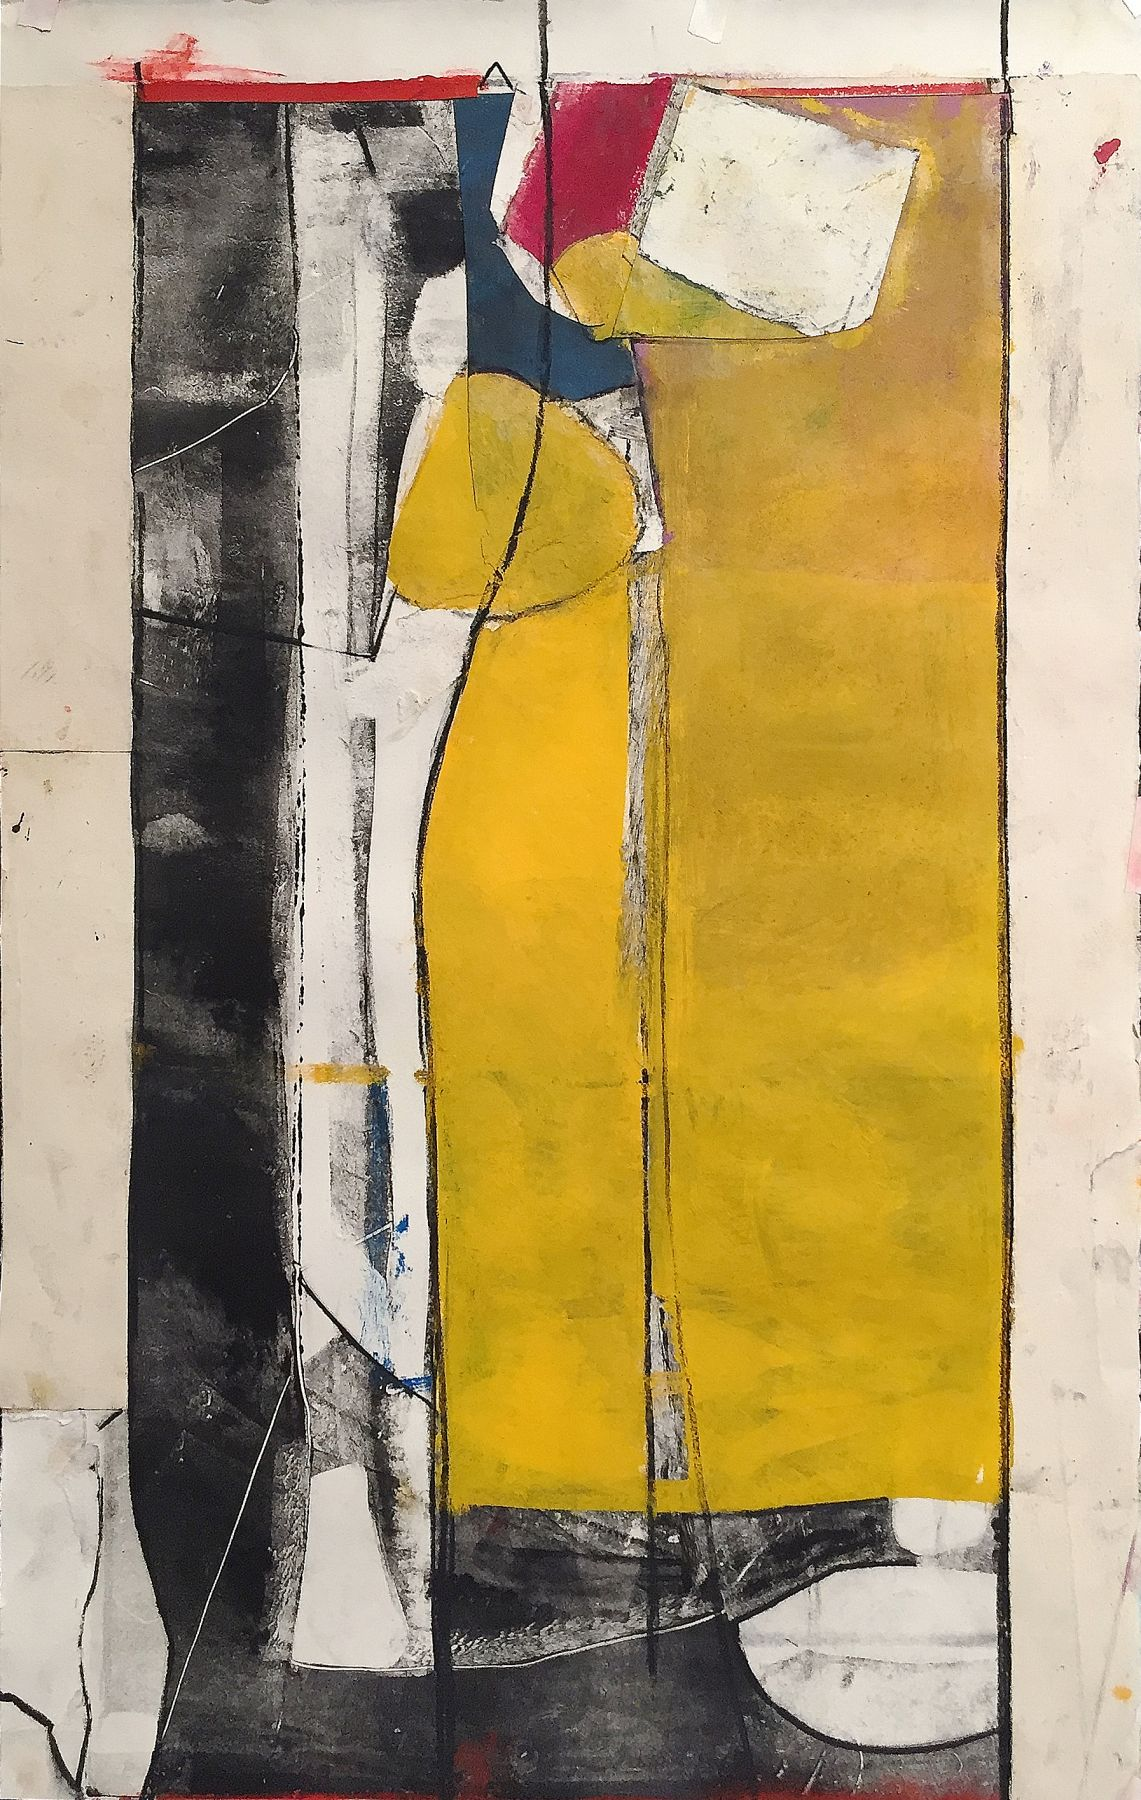 """Robert Szot. Study For Distancia. 2017. Monotype collage, mixed media on paper. 25"""" x 15 1/2"""""""